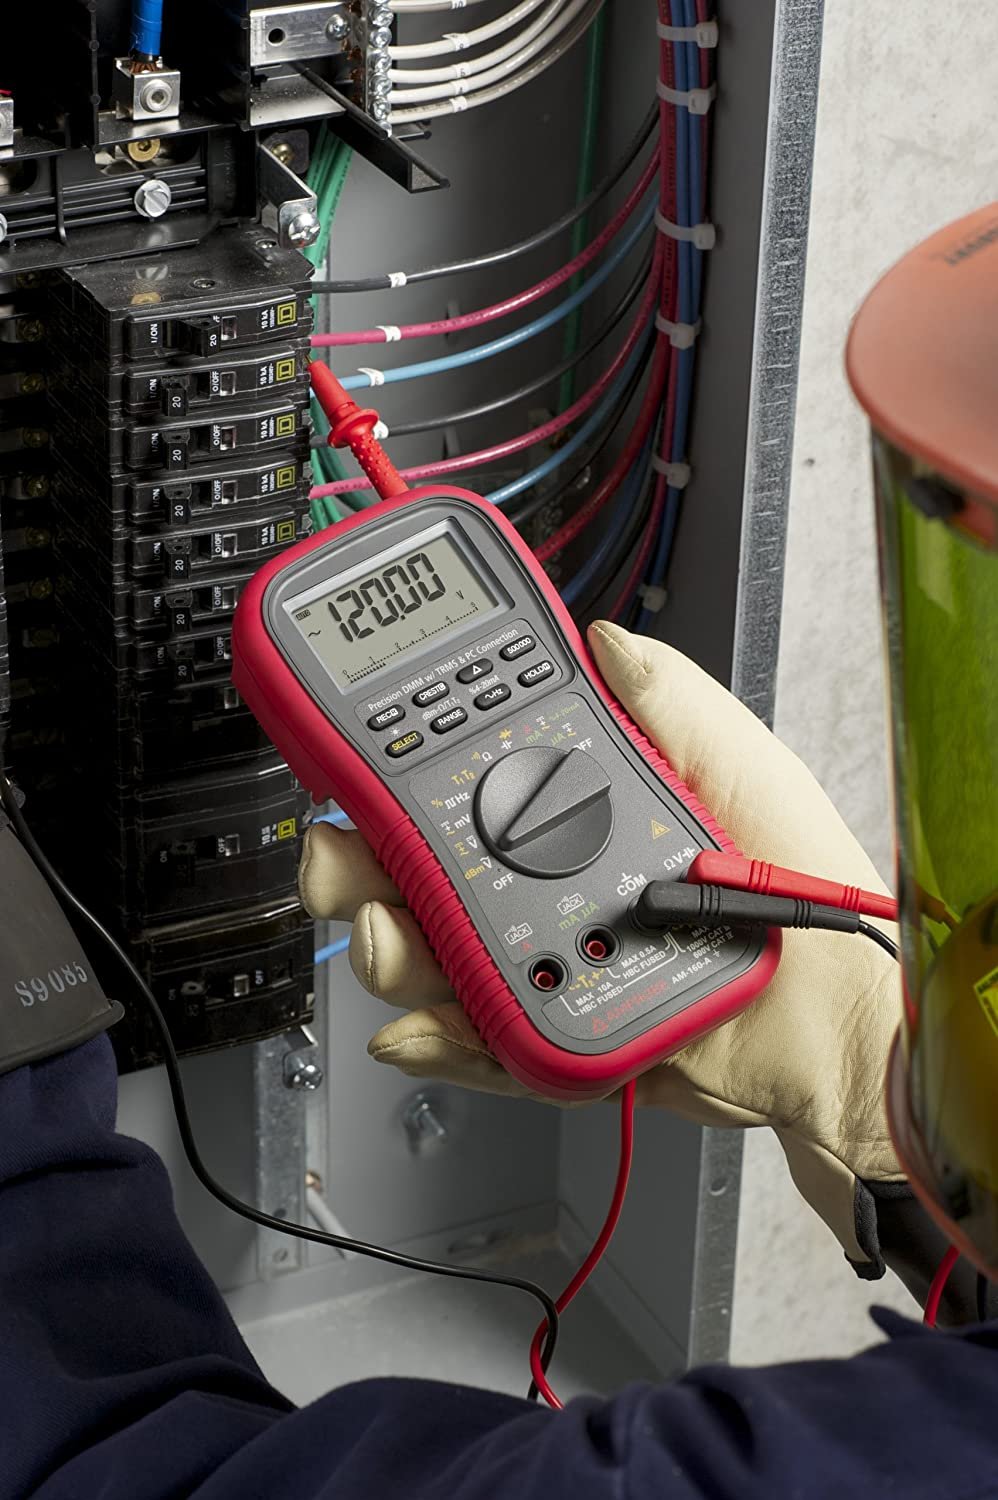 Amprobe Am 160 A Trms Multimeter With Temperature Multi Testers Residential Wiring Quiz Home Improvement